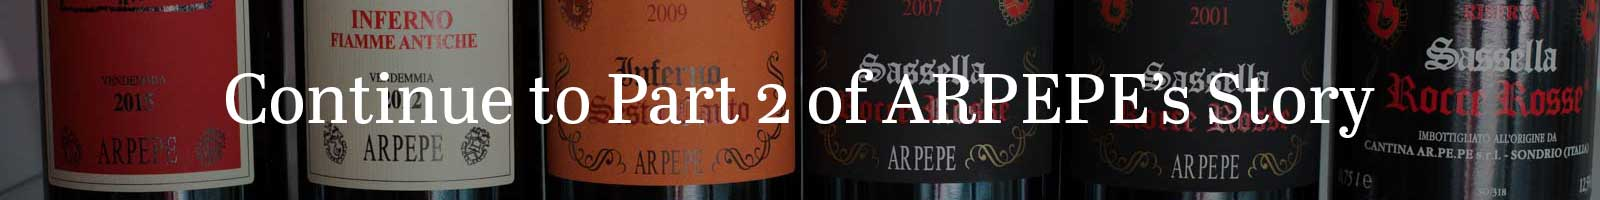 Part 2 of ARPEPE story on Opening a Bottle